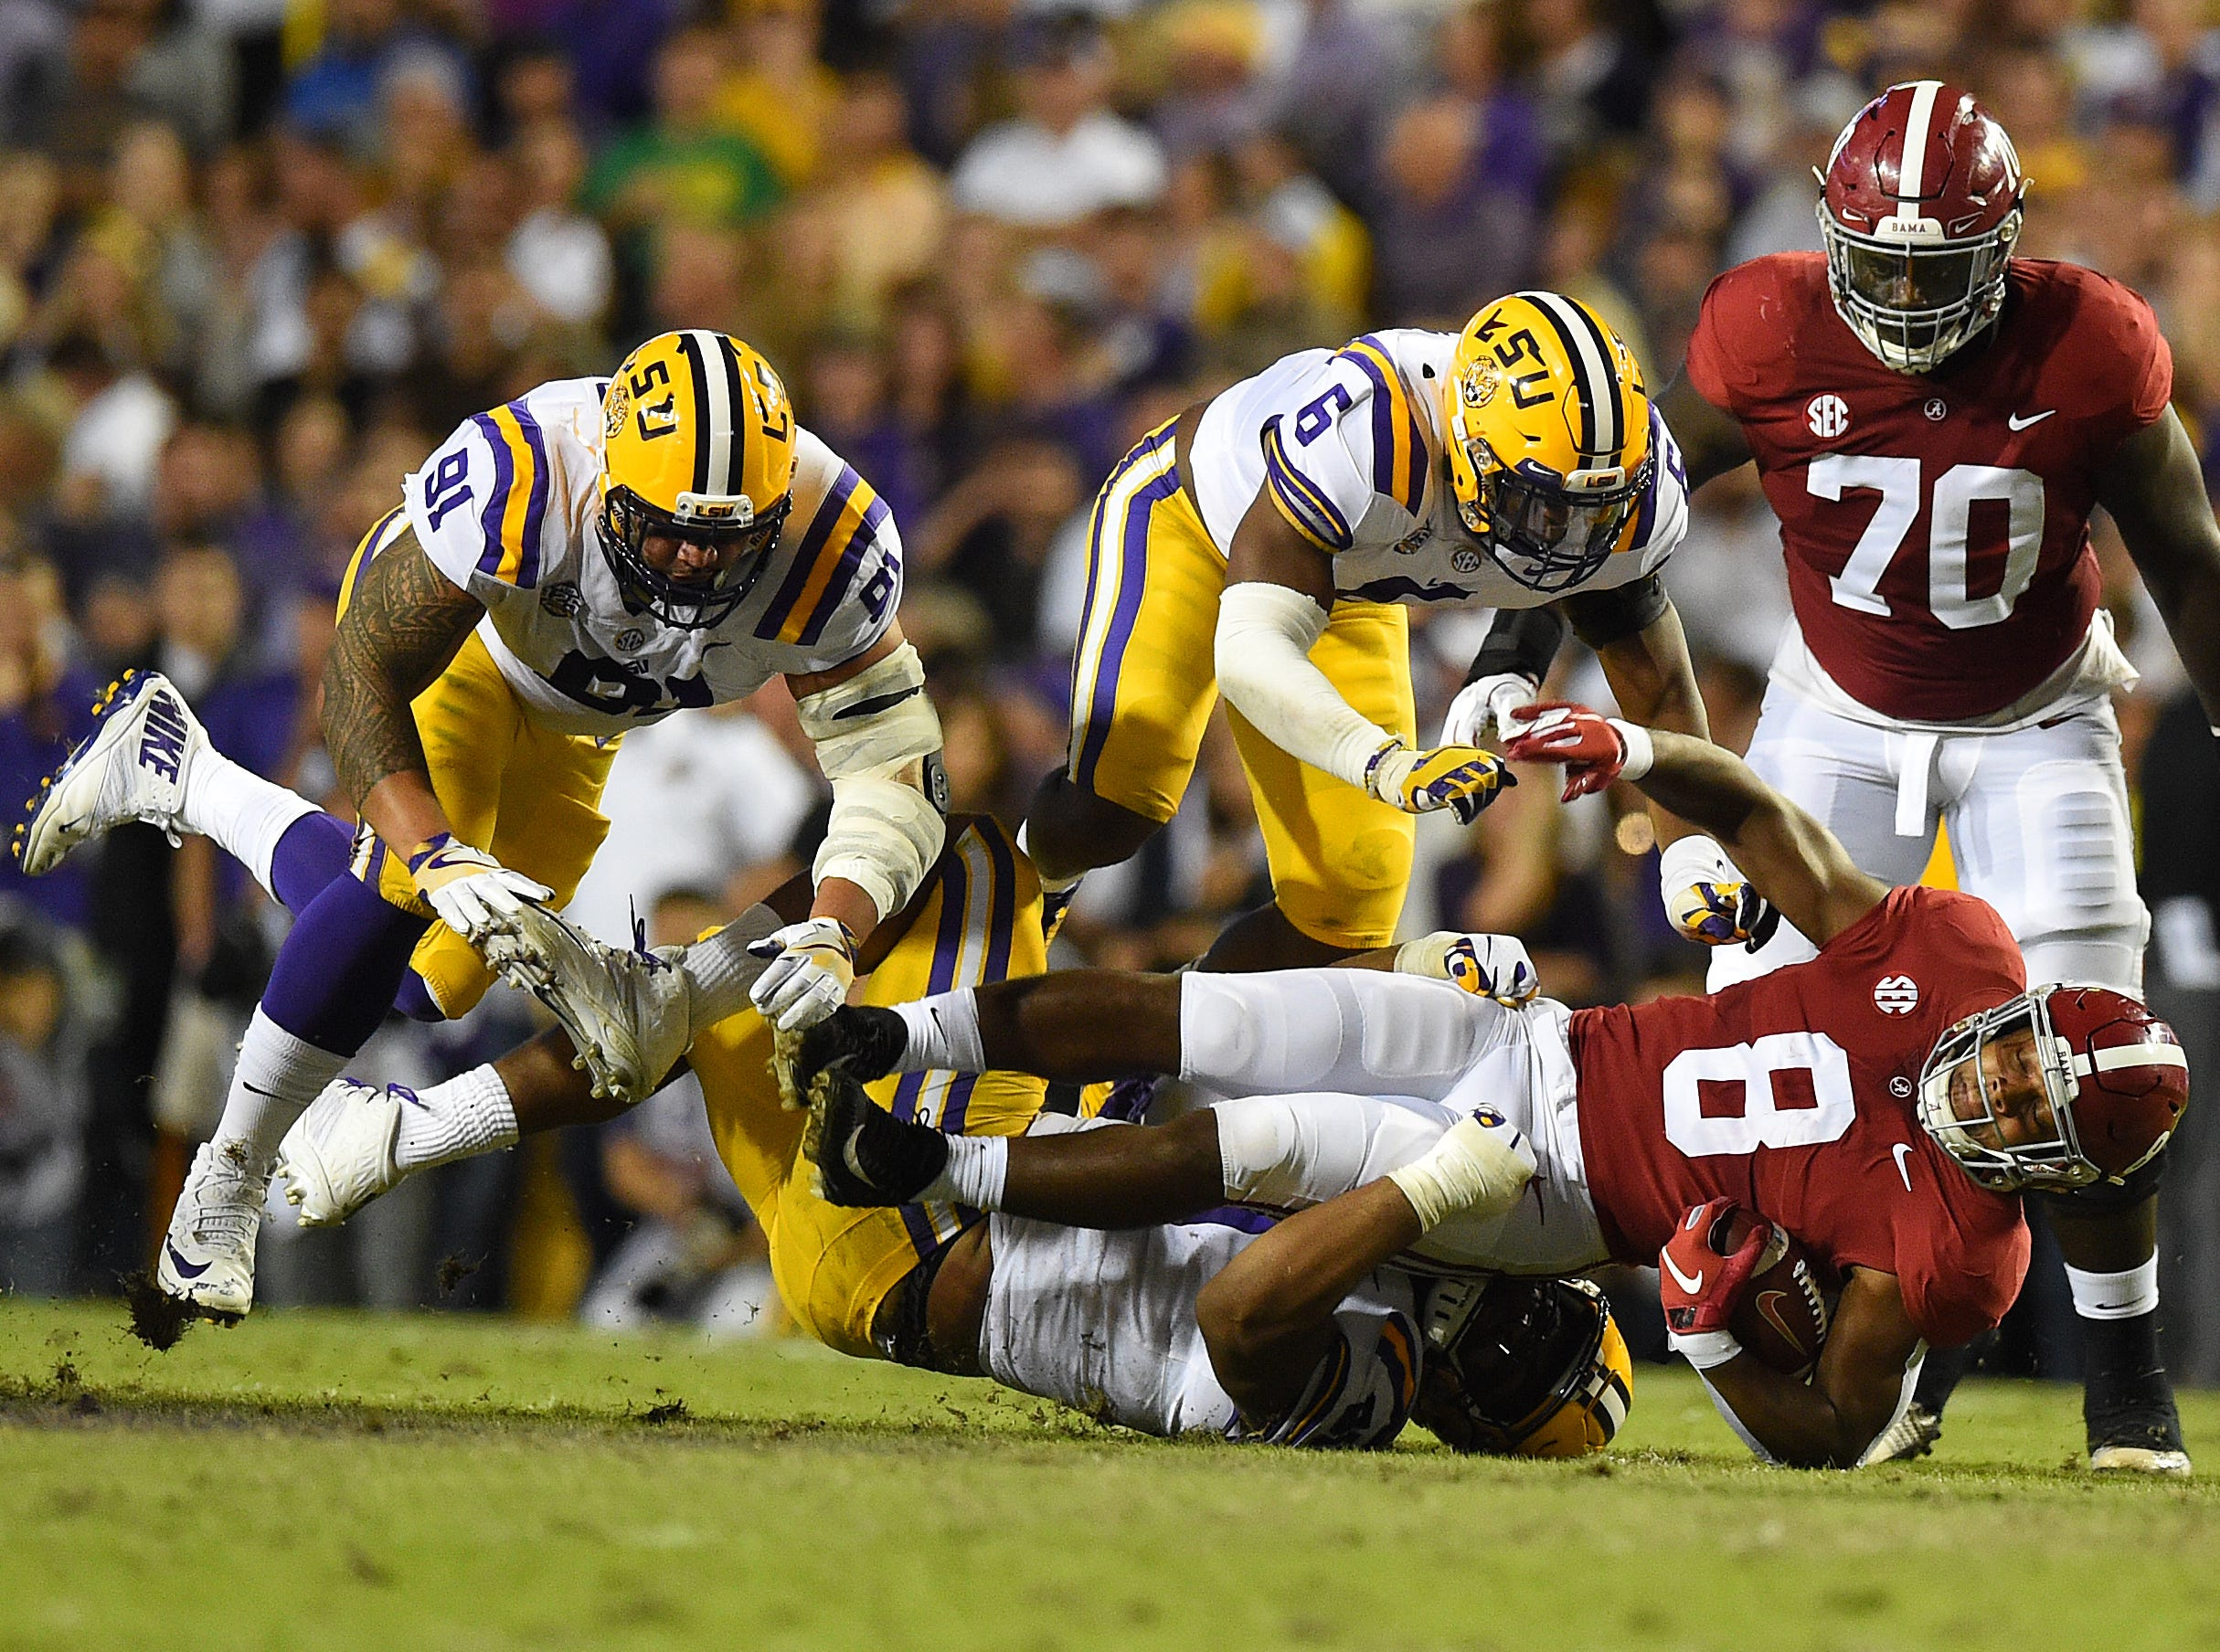 Alabama Crimson Tide running back Josh Jacobs (8) gets wrapped up by LSU Tigers defensive end Rashard Lawrence (90) on a carry during the first quarter at Tiger Stadium.